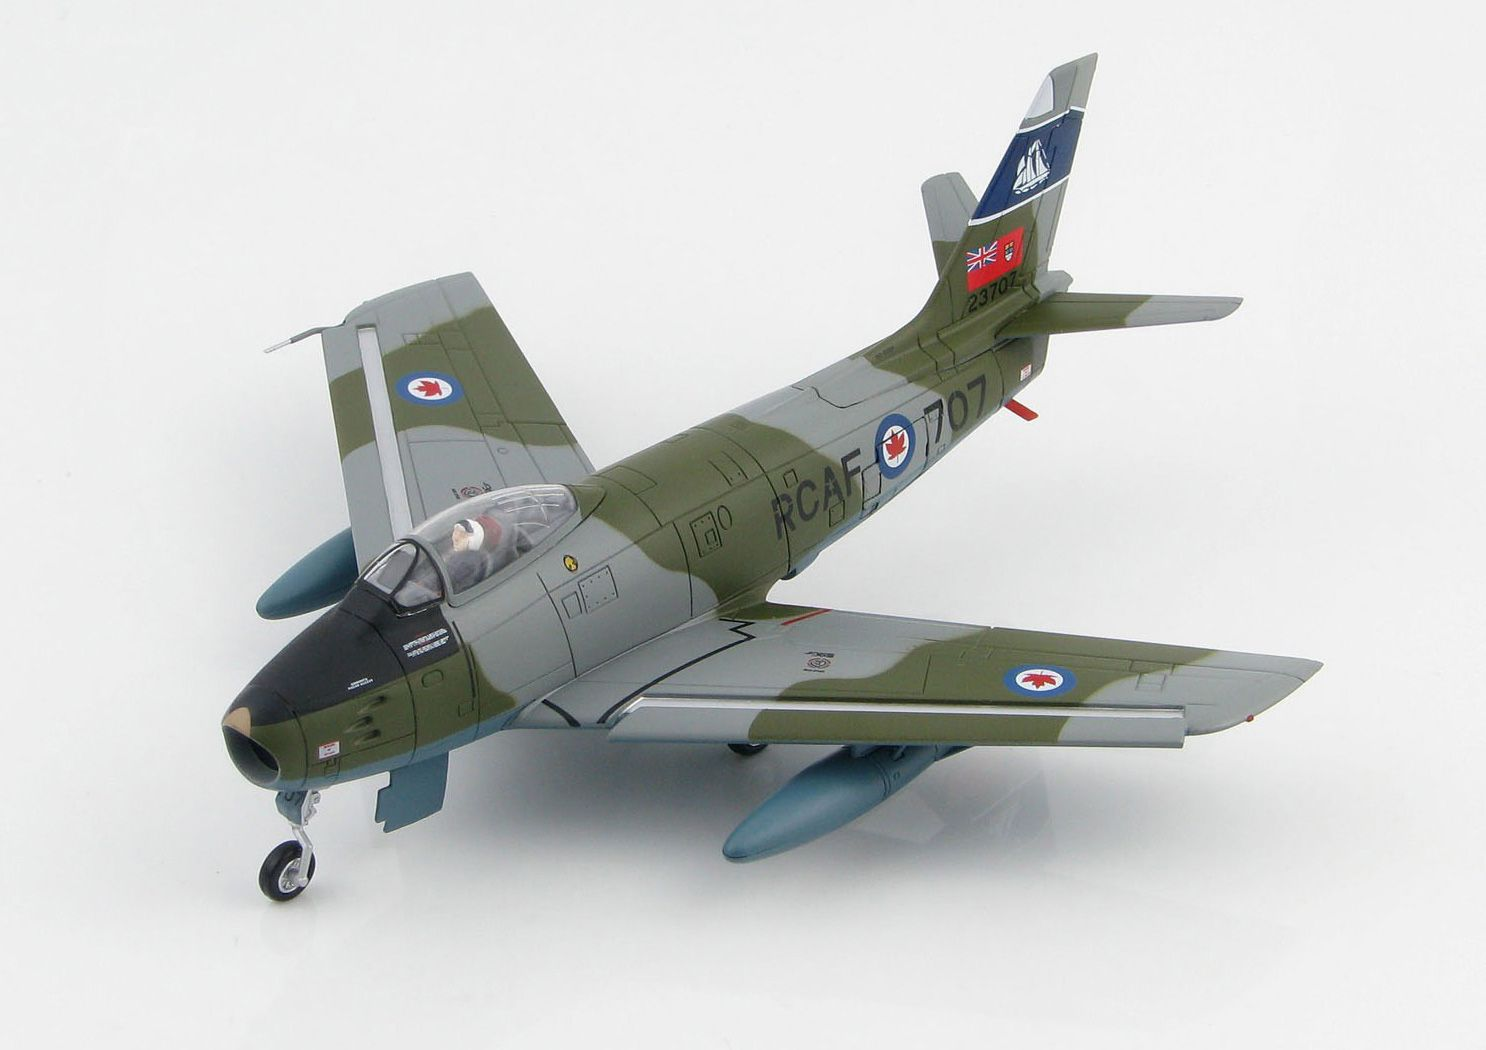 Picture Gallery for Hobby Master HA4305 Canadair Sabre Mk6 23707 (RCAF 434 Sqn 1950)